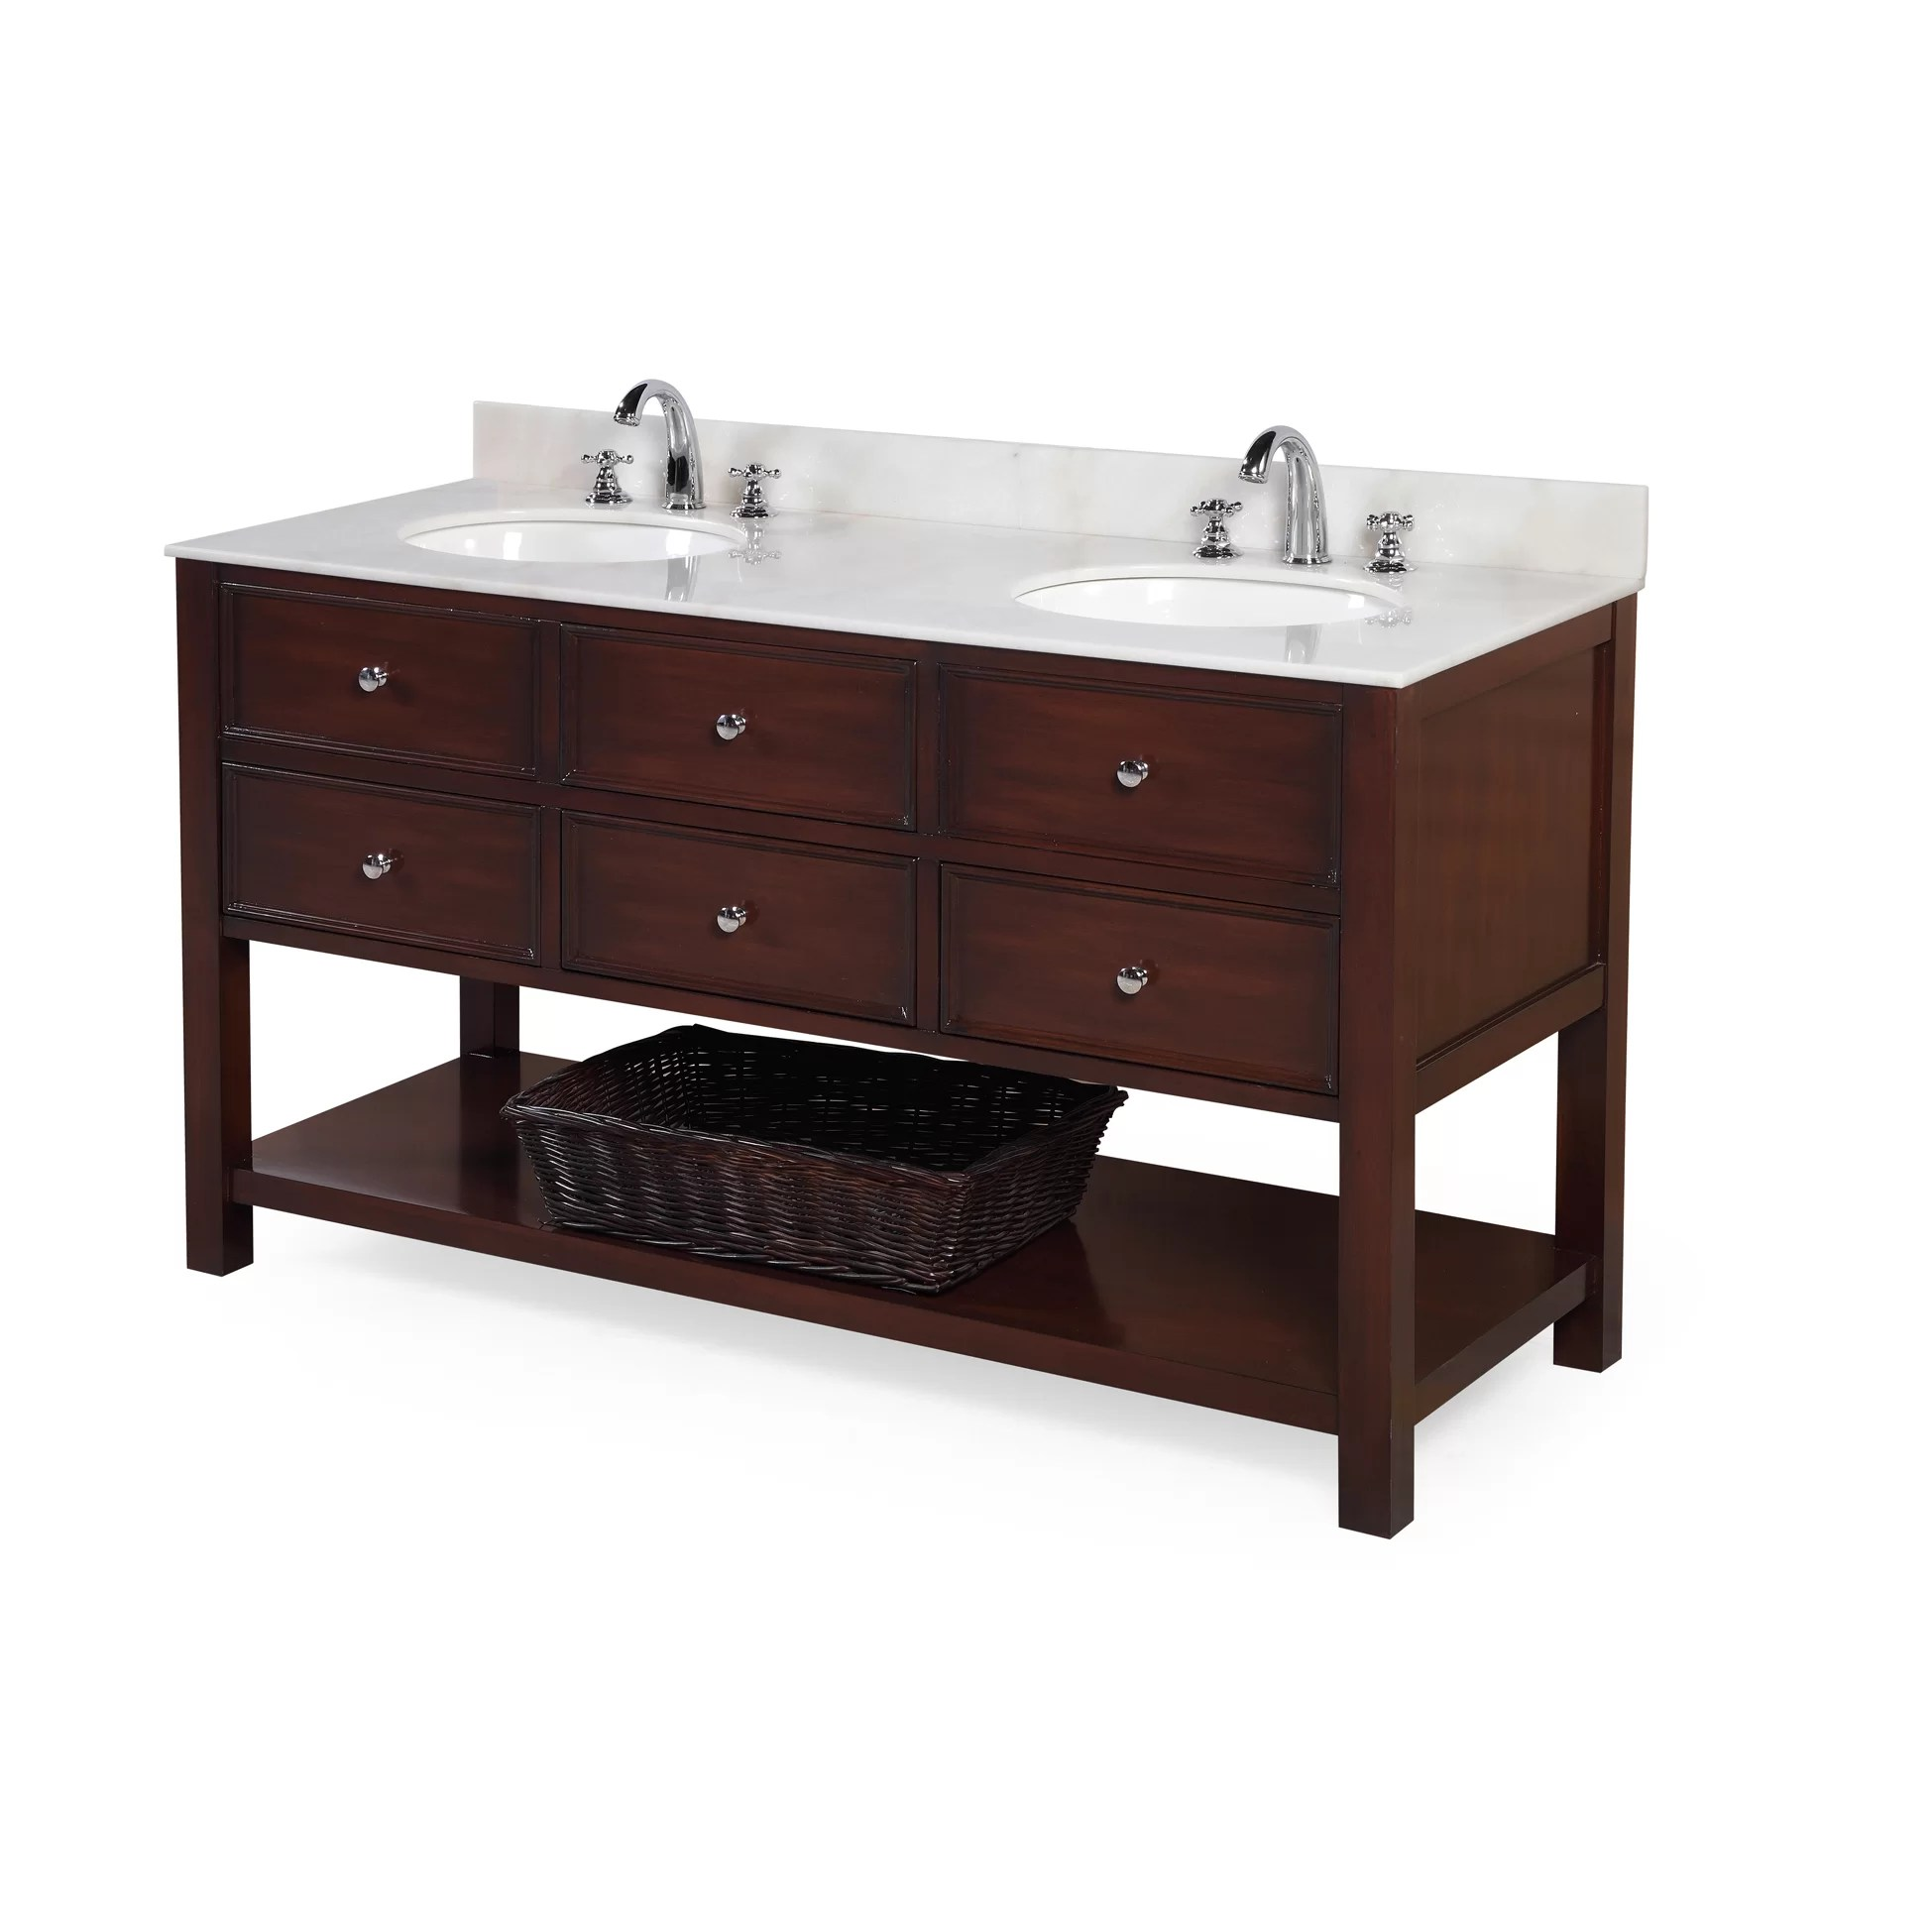 KBC New Yorker 60 Double Bathroom Vanity Set  Reviews